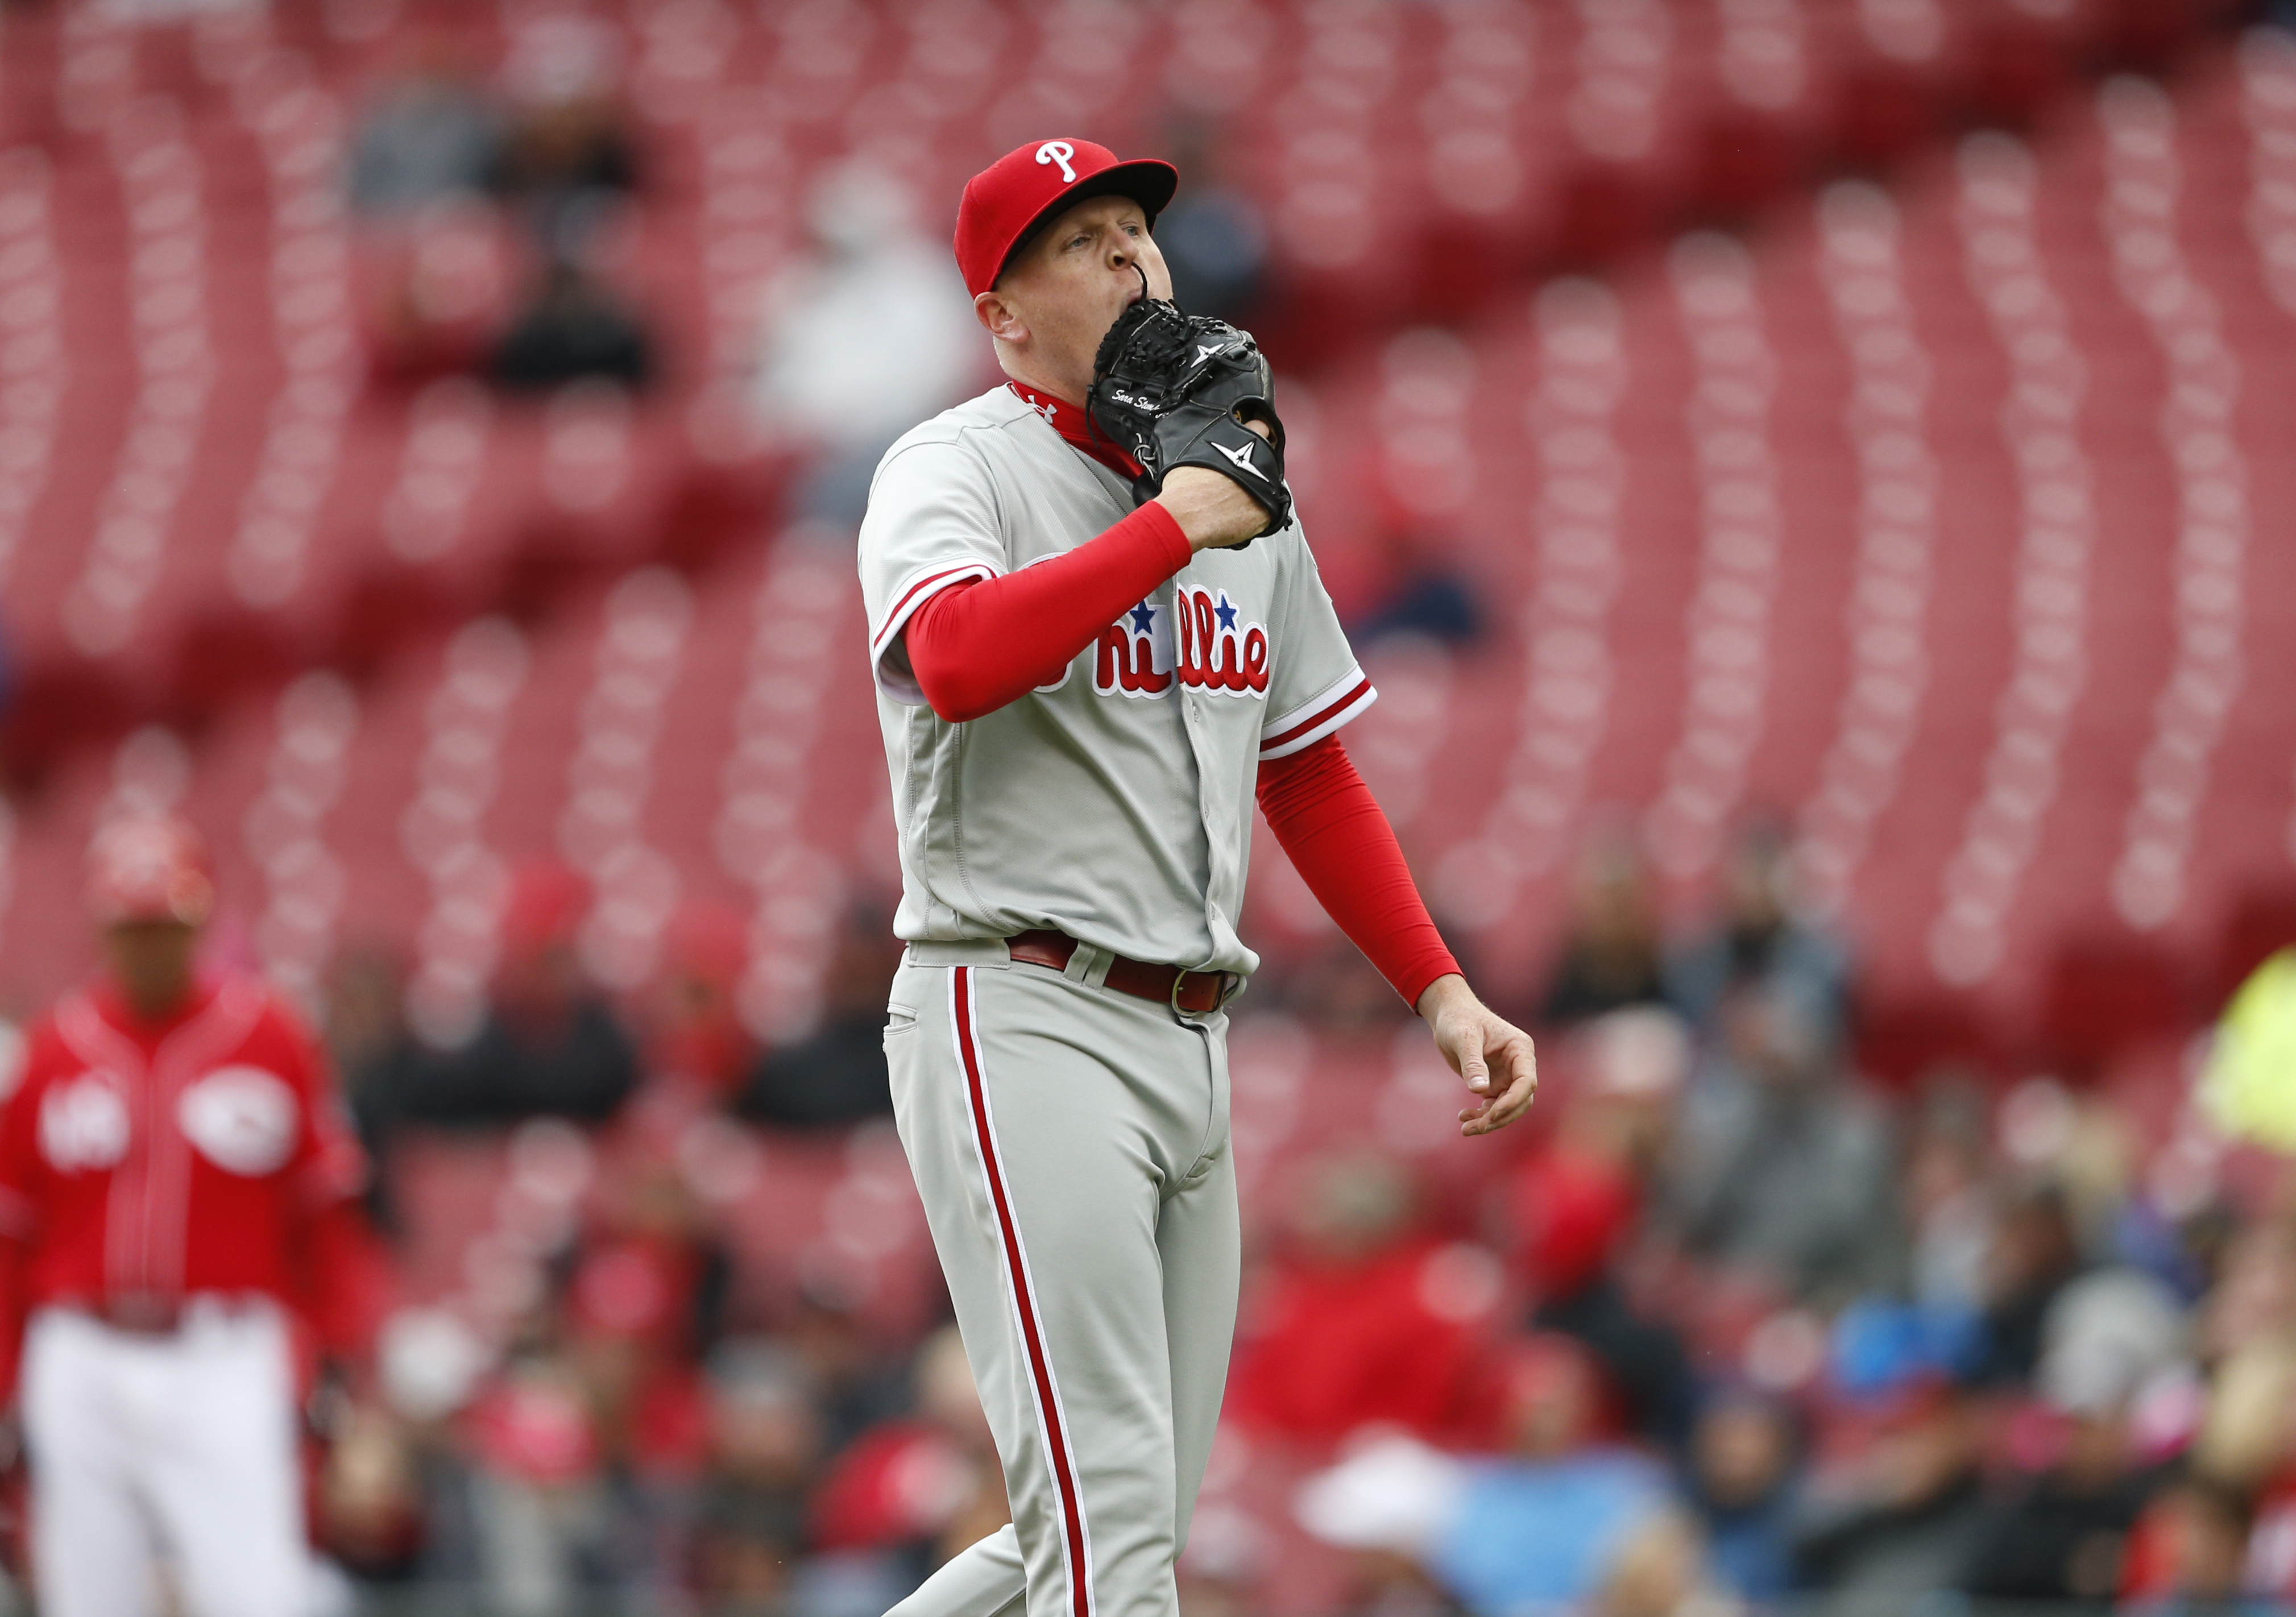 Philadelphia Phillies relief pitcher Daniel Stumpf walks to the dugout after being pulled from the game during the fourth inning of a baseball game against the Cincinnati Reds, Thursday, April 7, 2016, in Cincinnati. (AP Photo/Gary Landers)